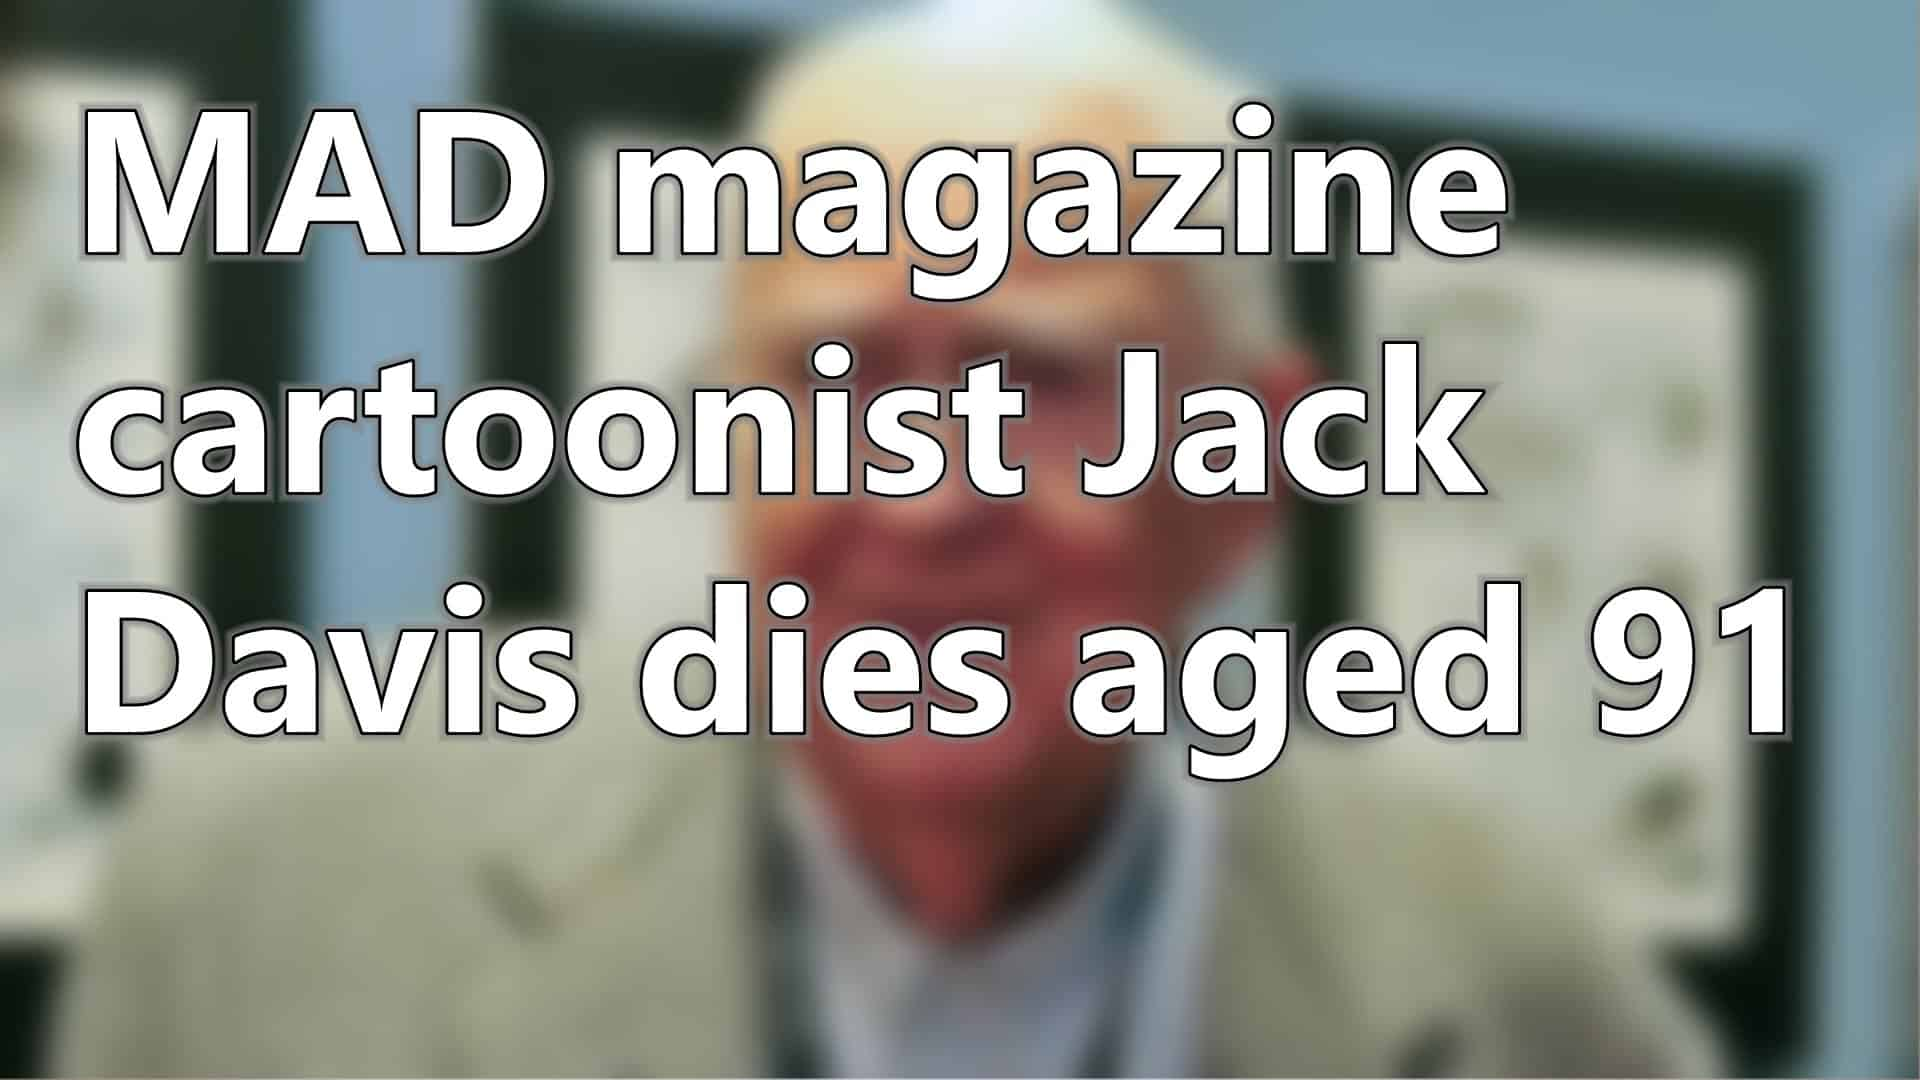 MAD magazine cartoonist Jack Davis dies aged 91 | Short News 20